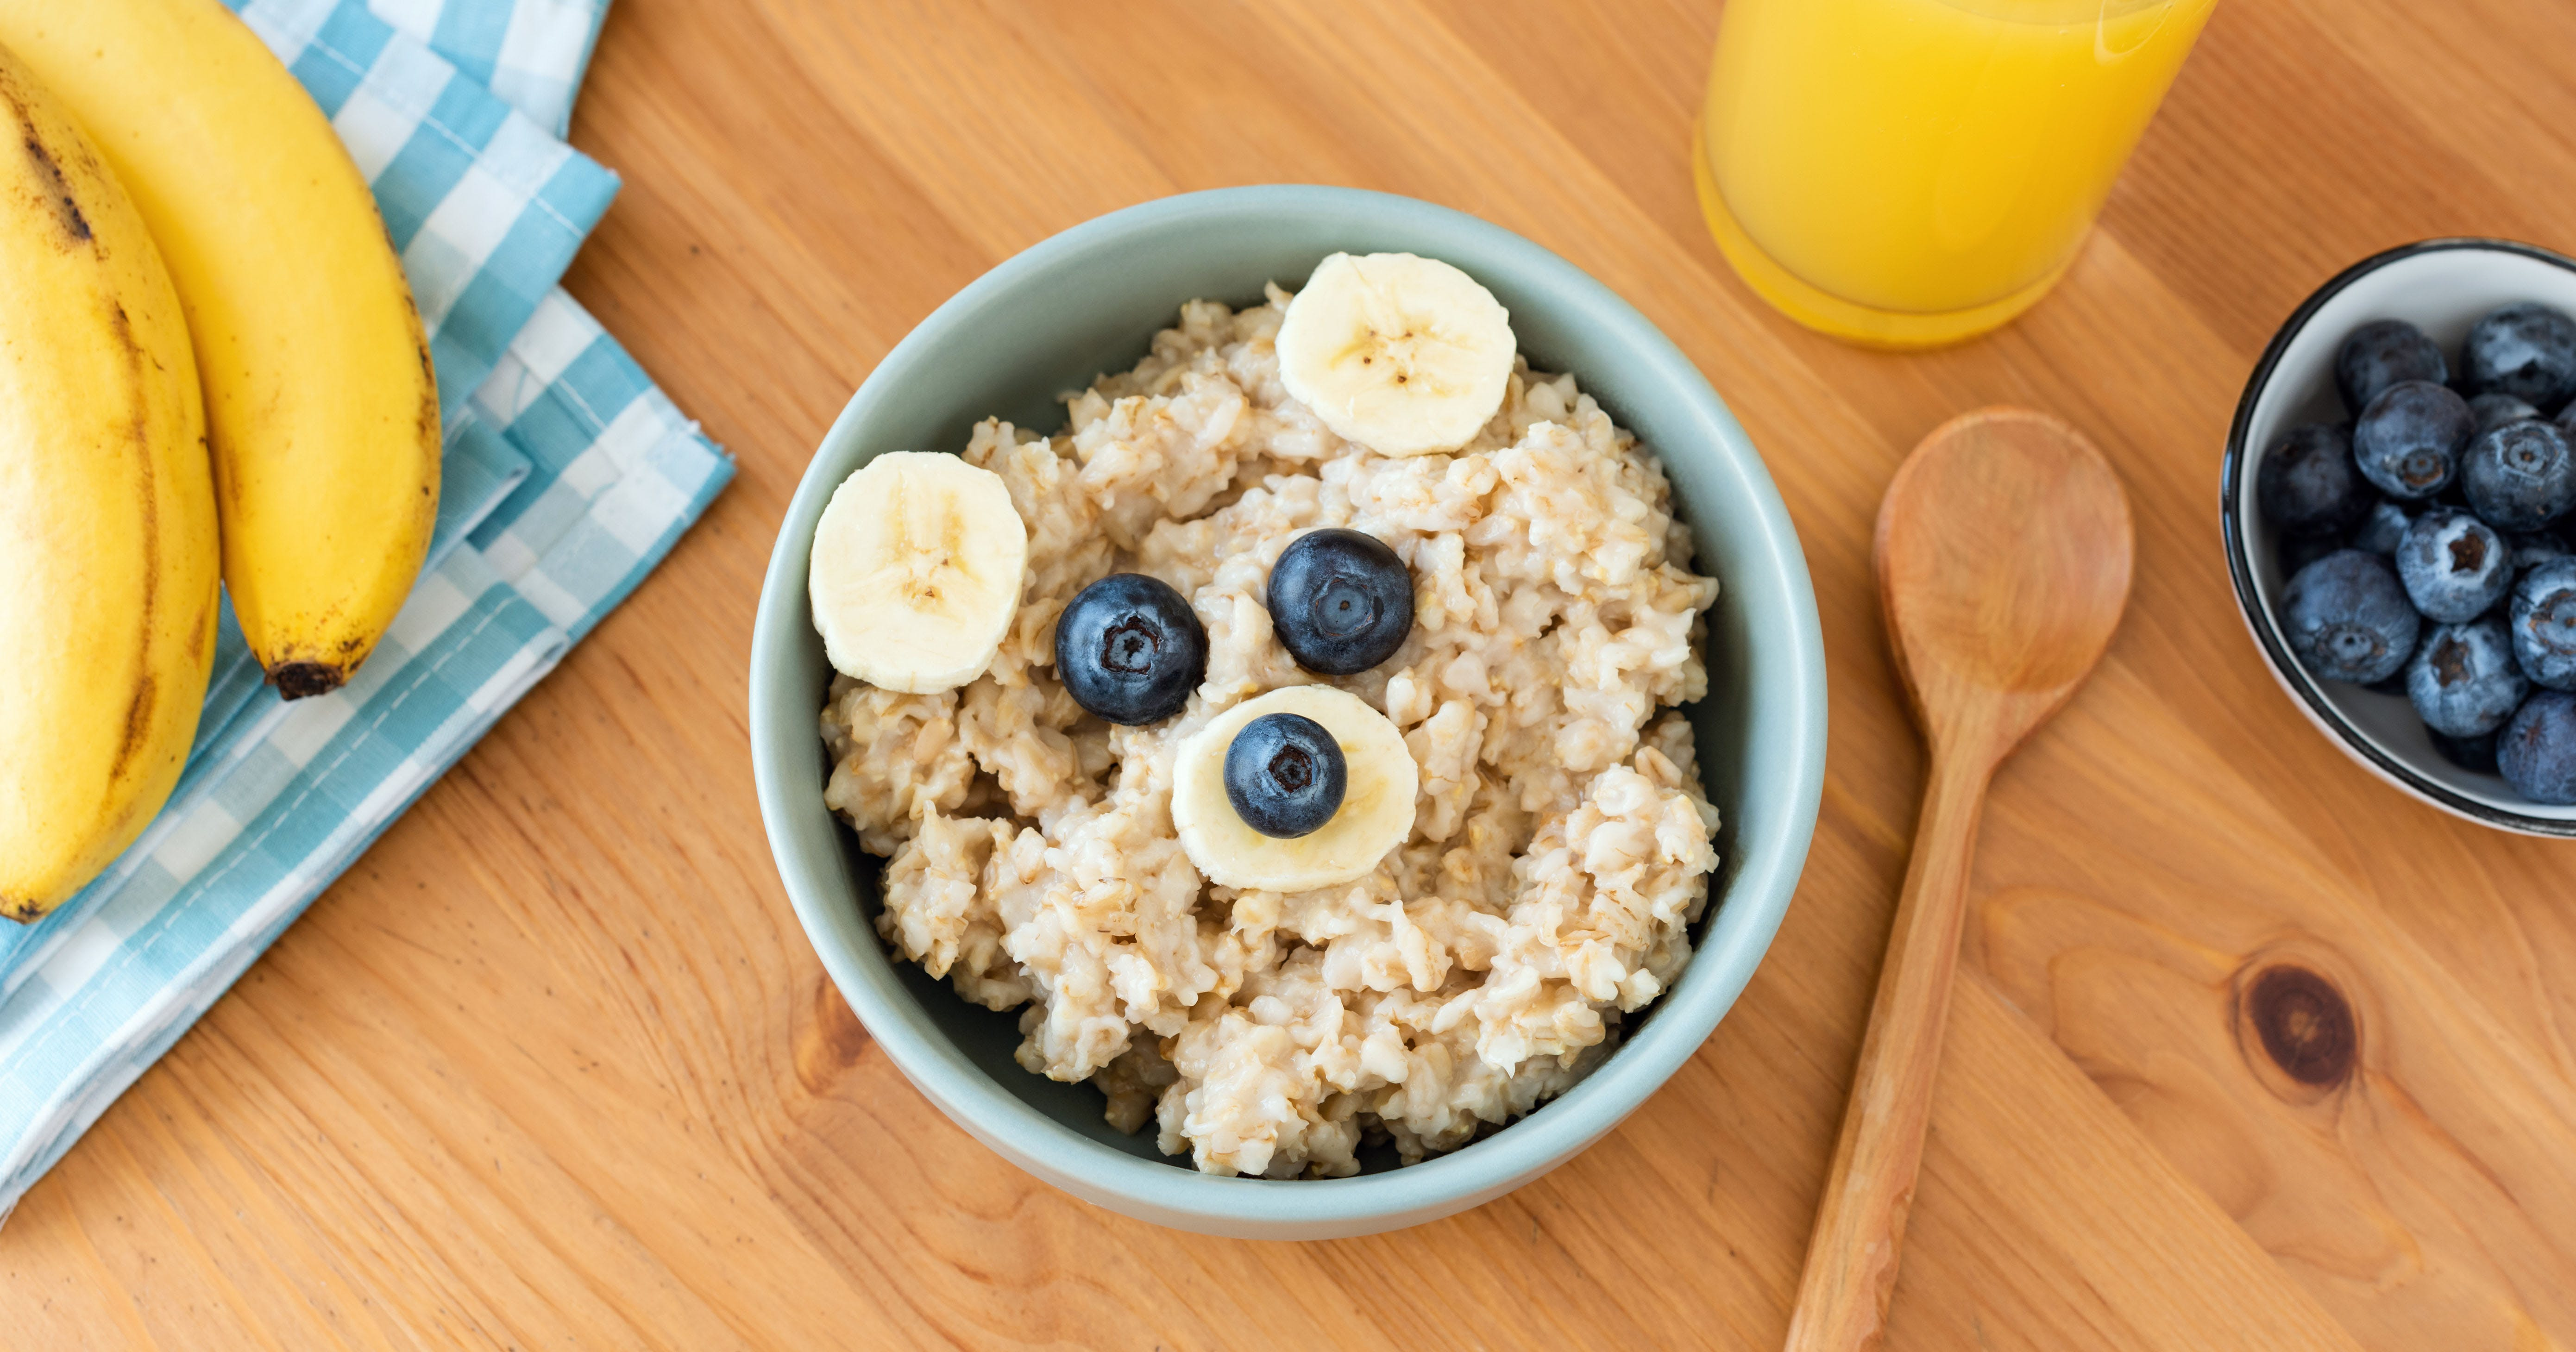 11 High-Fiber Foods for Kids That Even the Pickiest Eaters Will Love